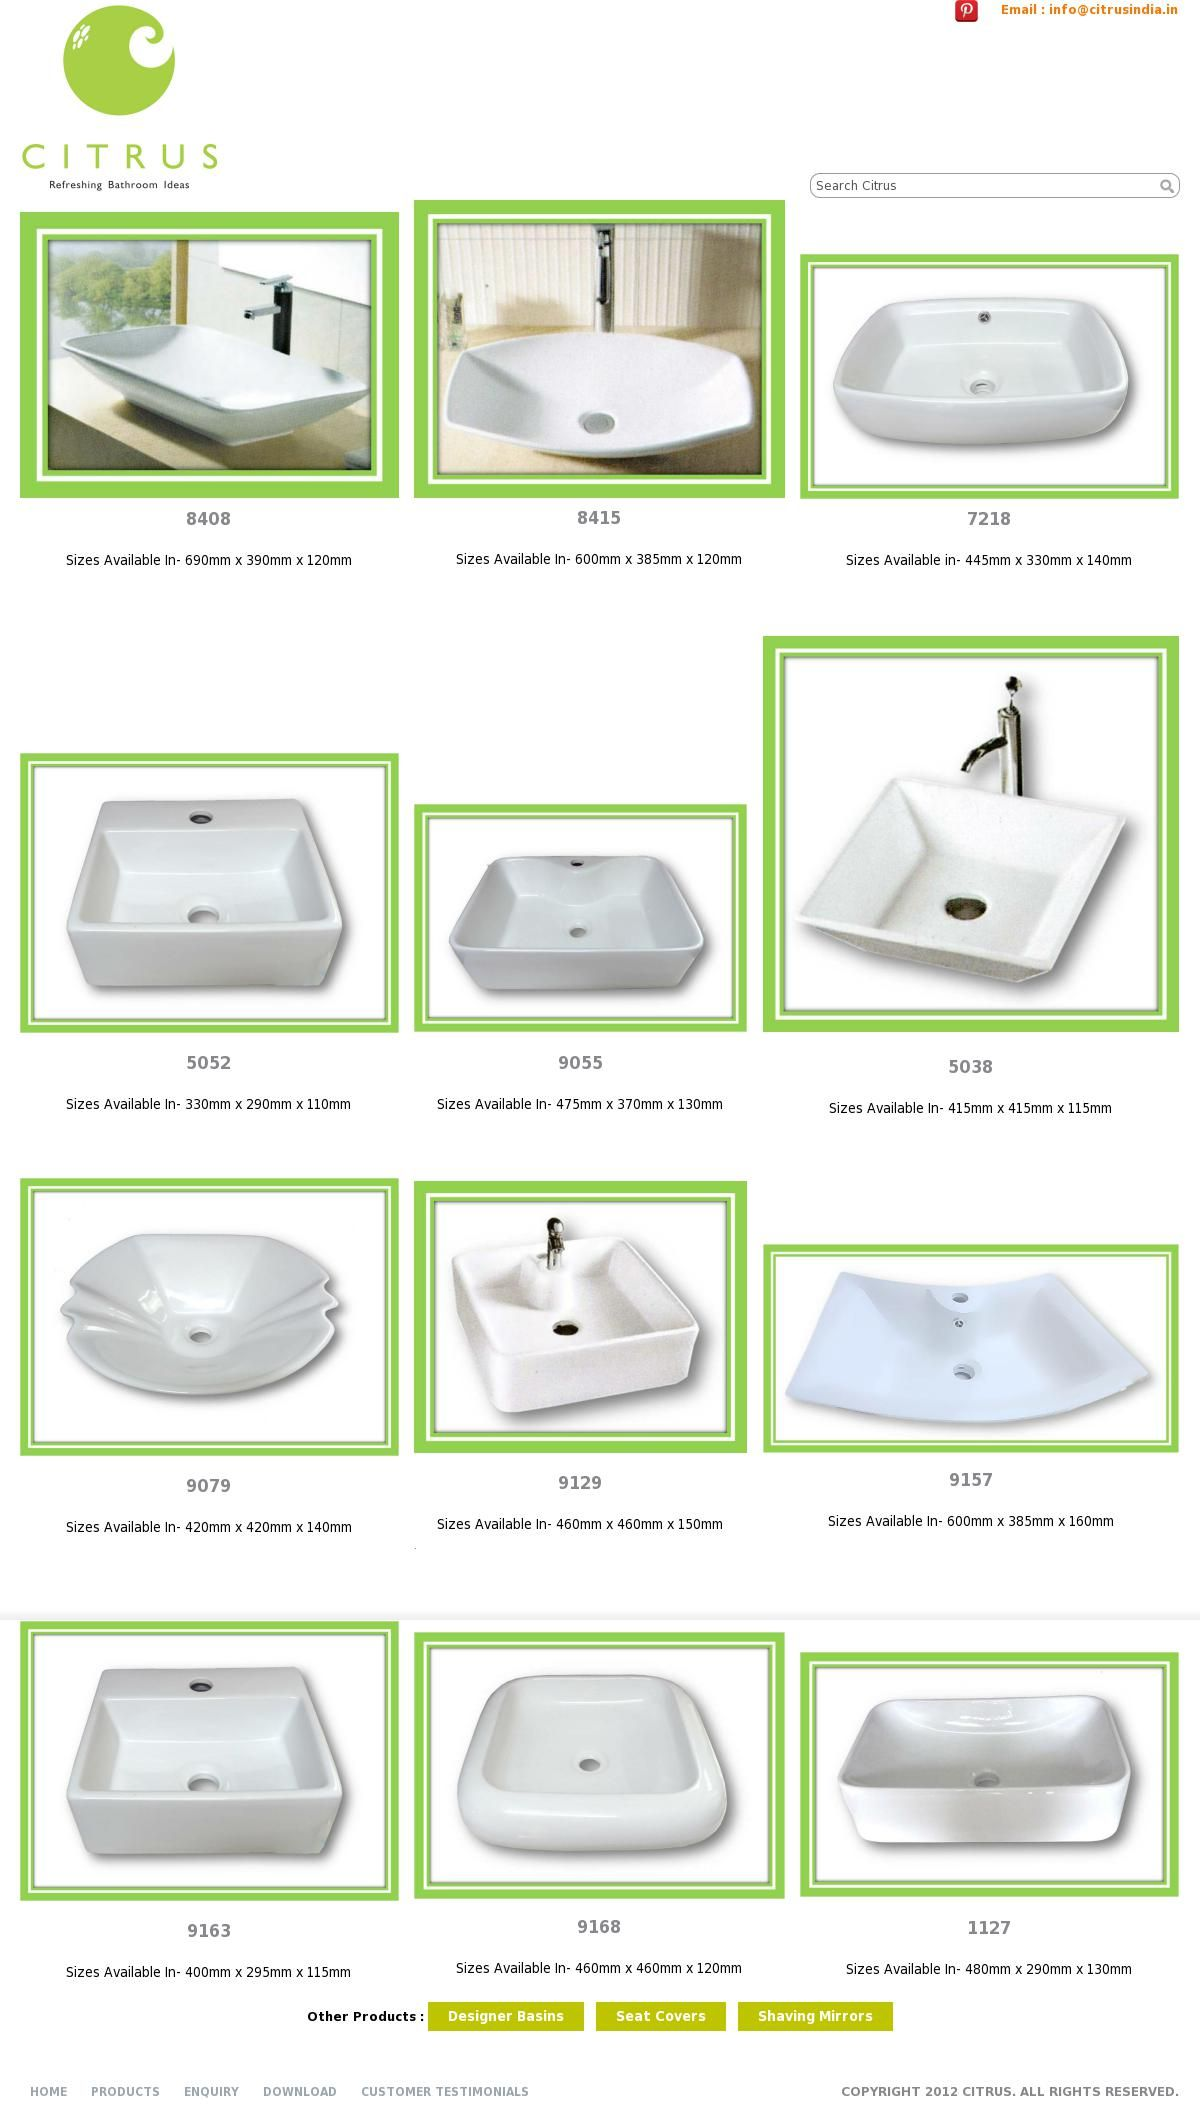 The Website Http Www Citrusindia In White Basins Courtesy Of Pinstamatic Http Pinstamatic Com Citrus Bathroom Wash Basin Basin Sink